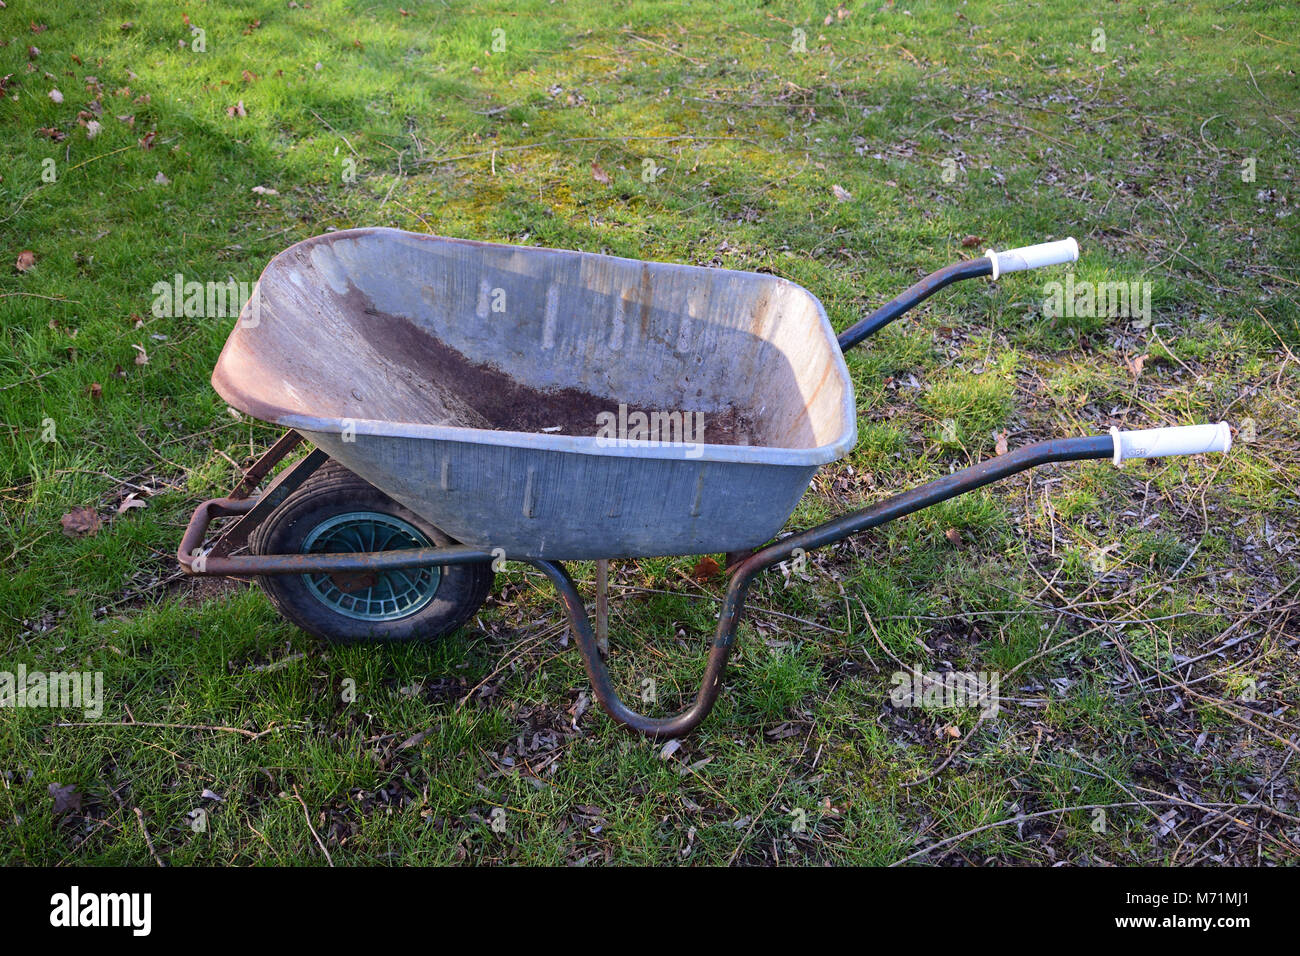 Used stainless steel wheelbarrow in the grass - Stock Image